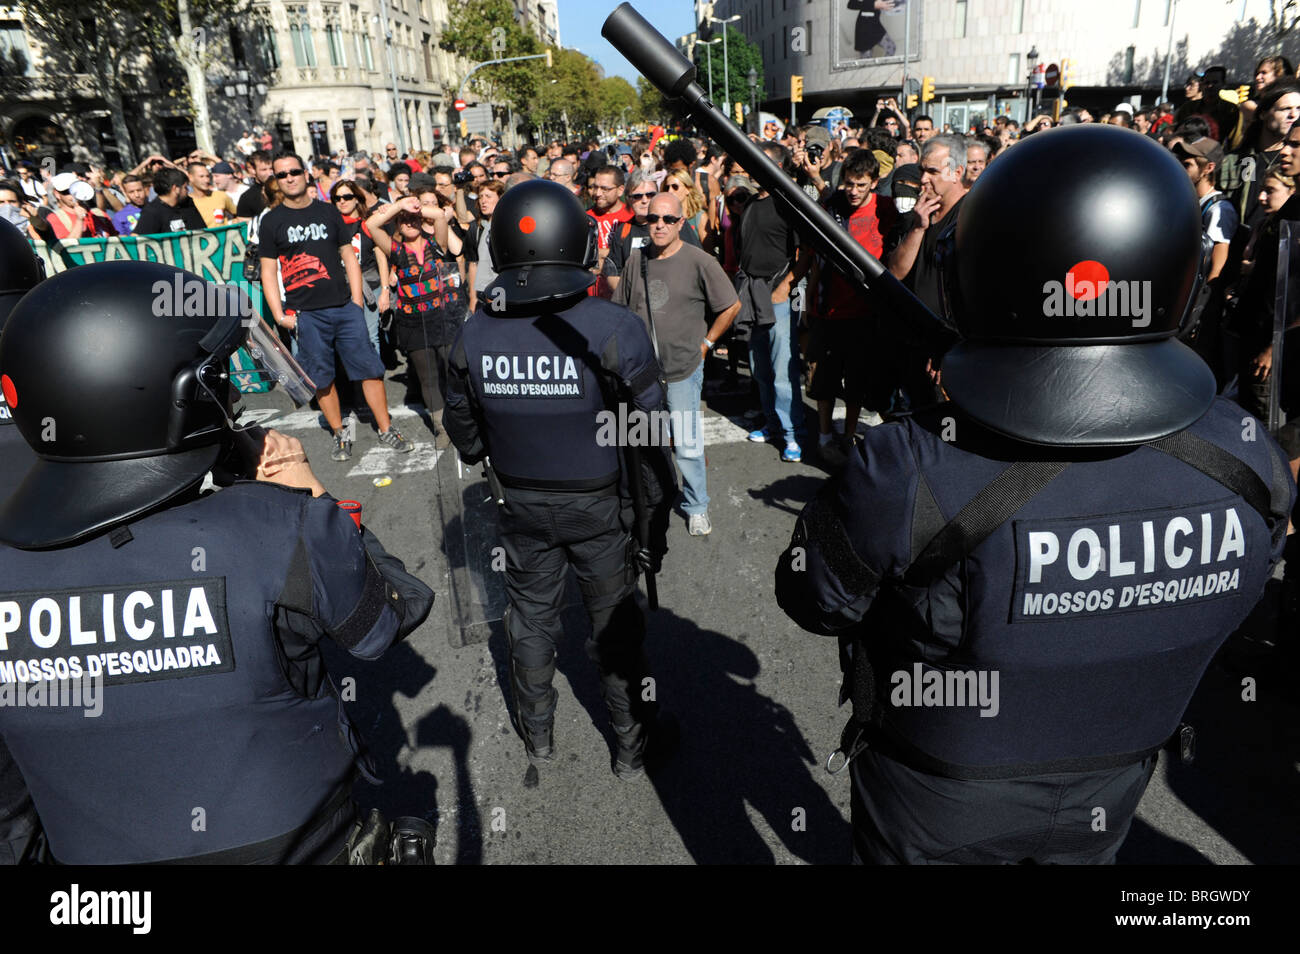 Protesters face  anti riot police in the clashes at the city center during the general strike in Barcelona.Spain. - Stock Image